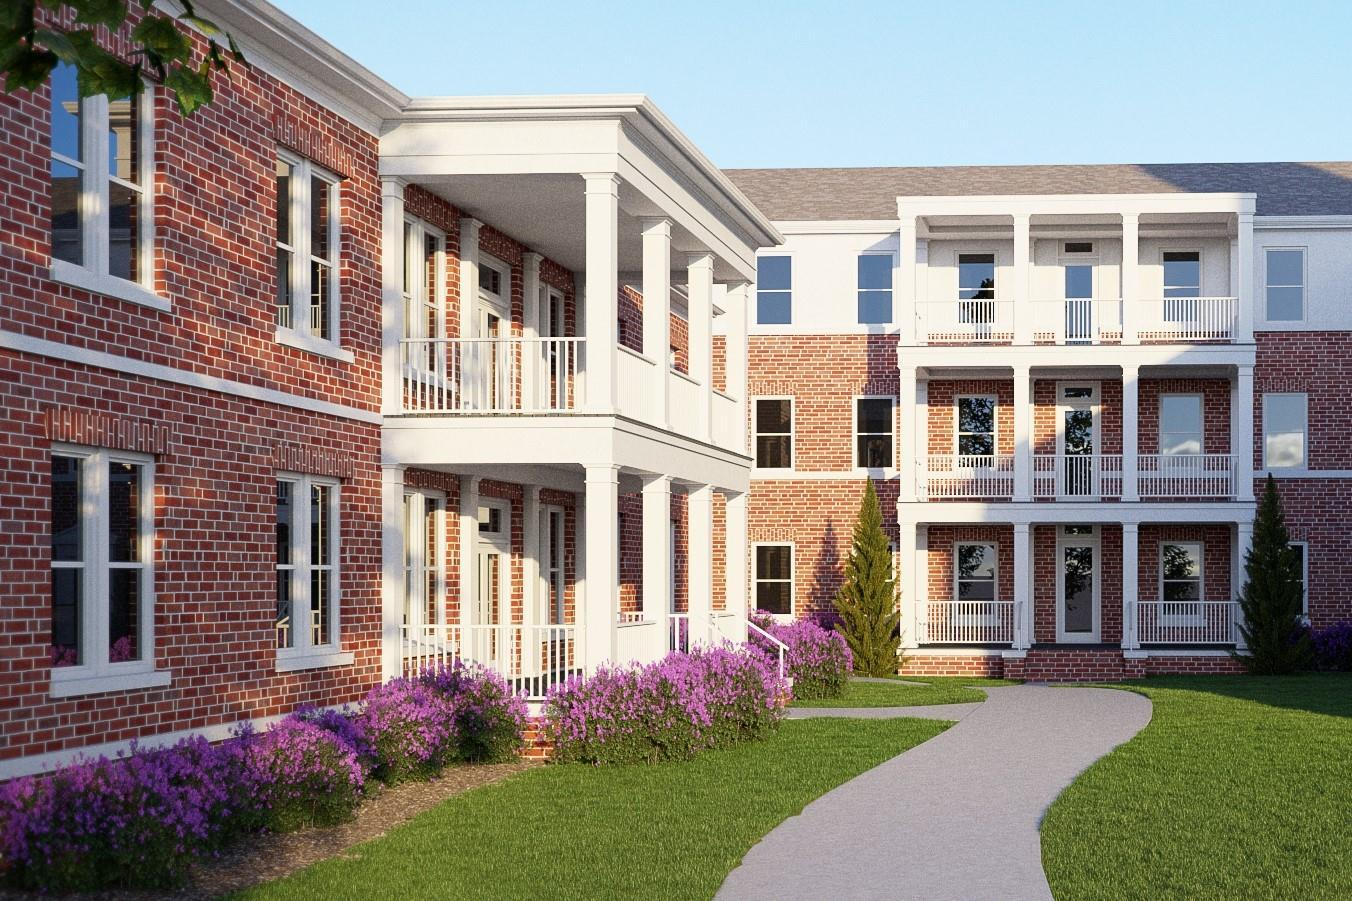 1200 Ponce:One-of-a-Kind Residences in the Heart of Atlanta's Druid Hills